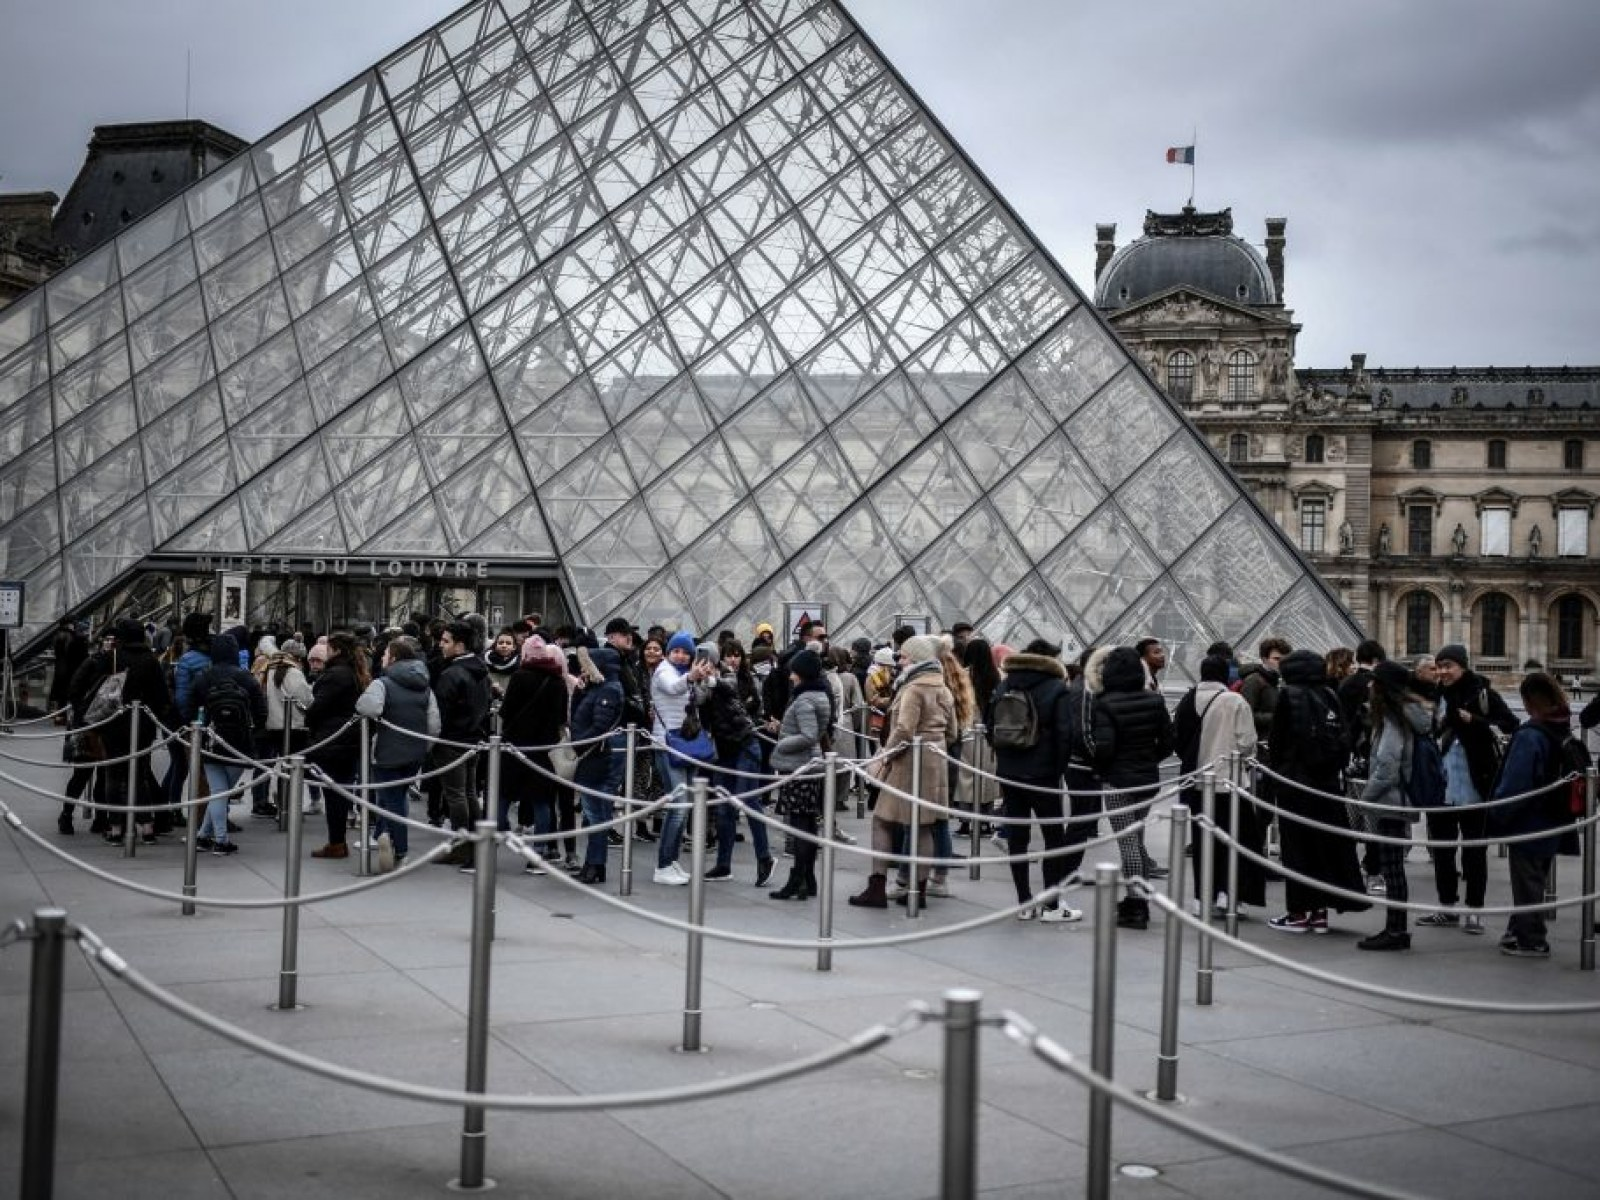 France S Louvre Museum Shuts Down Amid Coronavirus Concerns